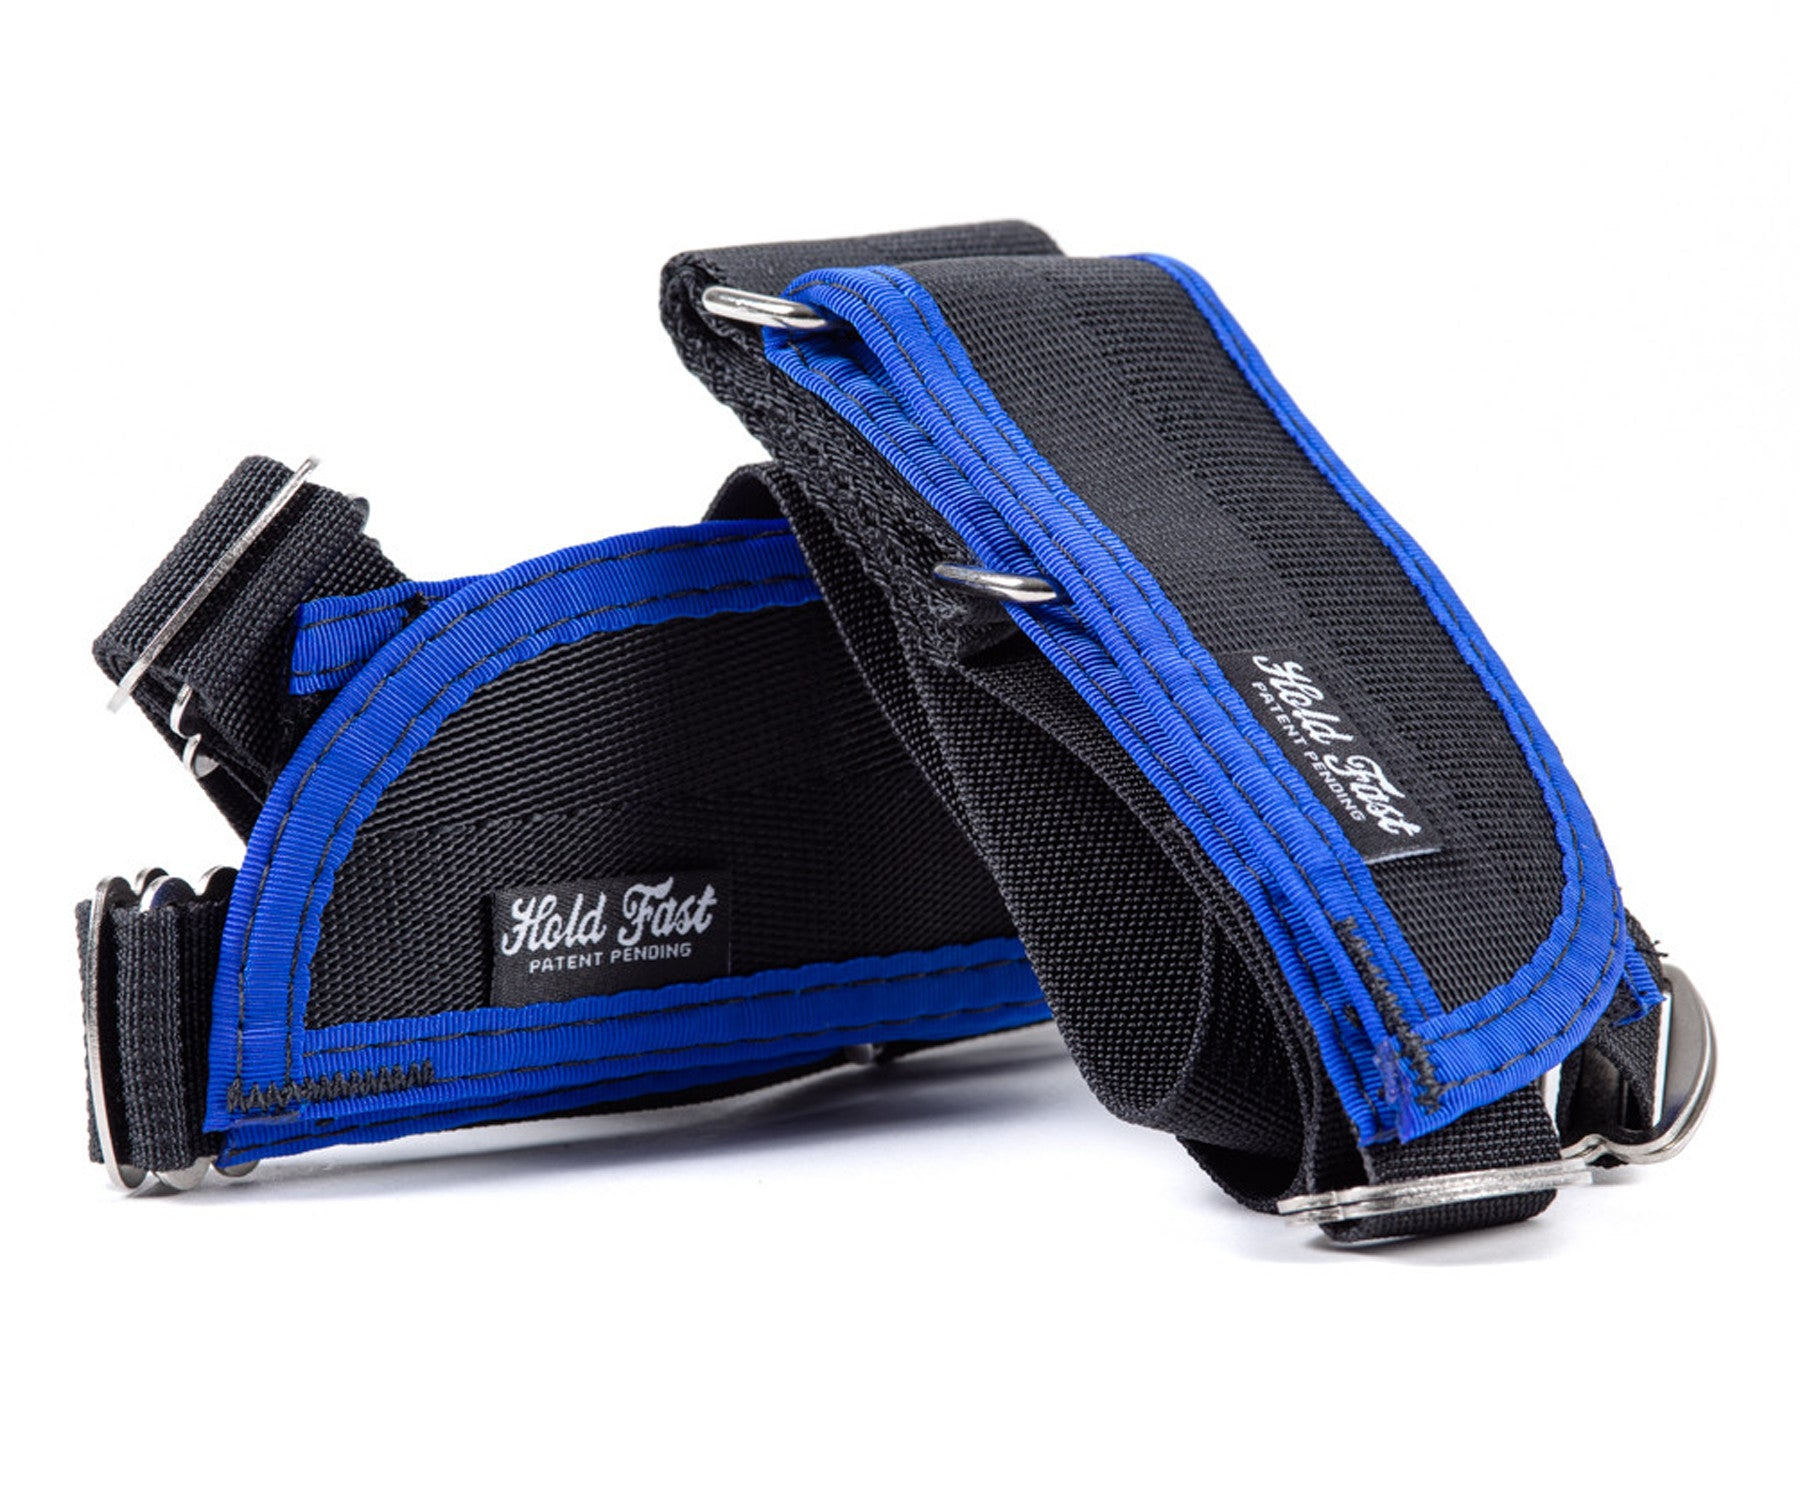 Hold Fast FRS pedal straps - Retrogression